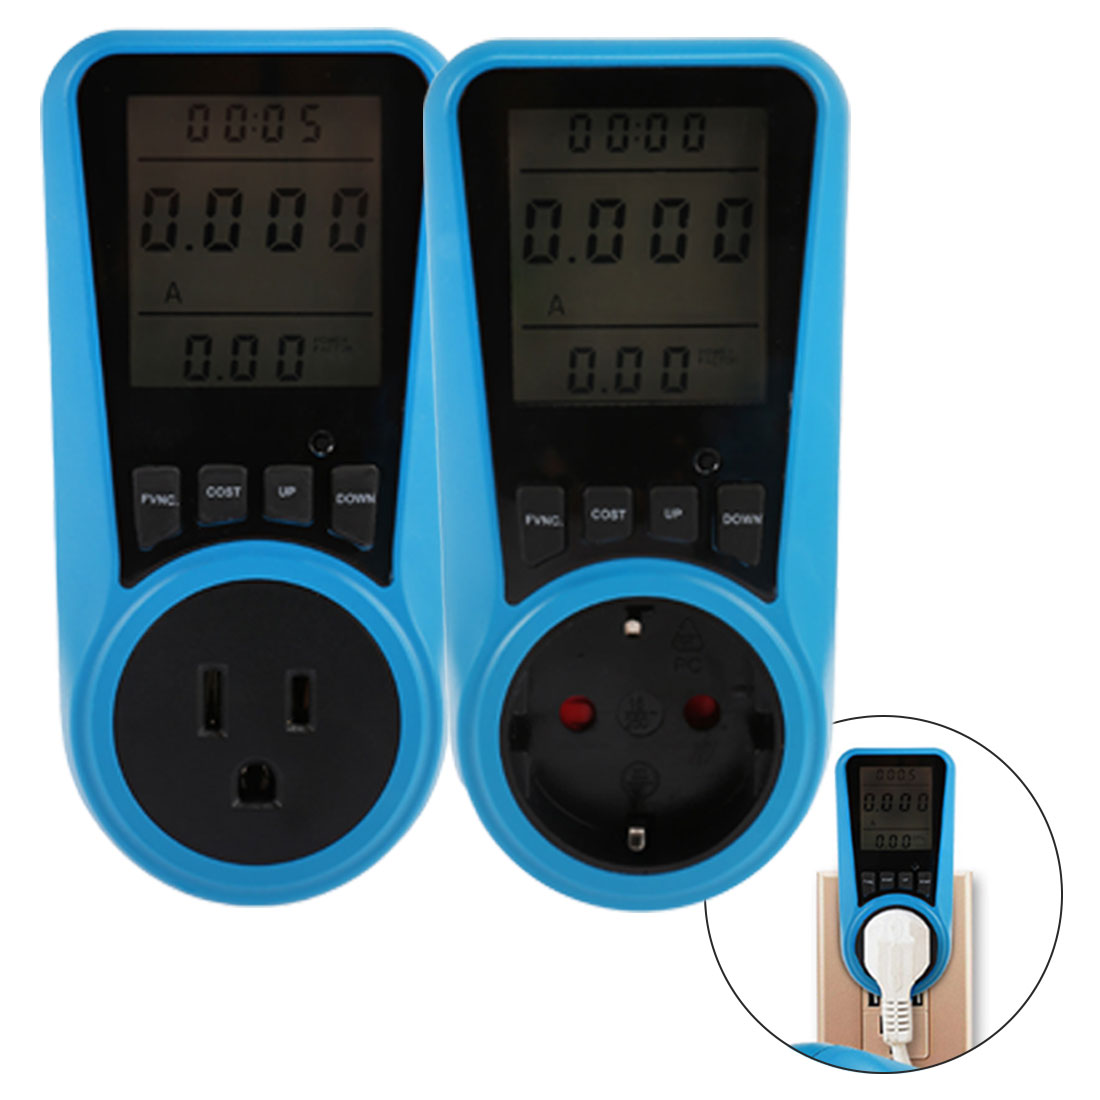 Power <font><b>Meter</b></font> Routine Measuring Outlet Socket <font><b>Electricity</b></font> Usage Monitor Household Power Metering Socket AC230V 50Hz EU/US/UK Plug image